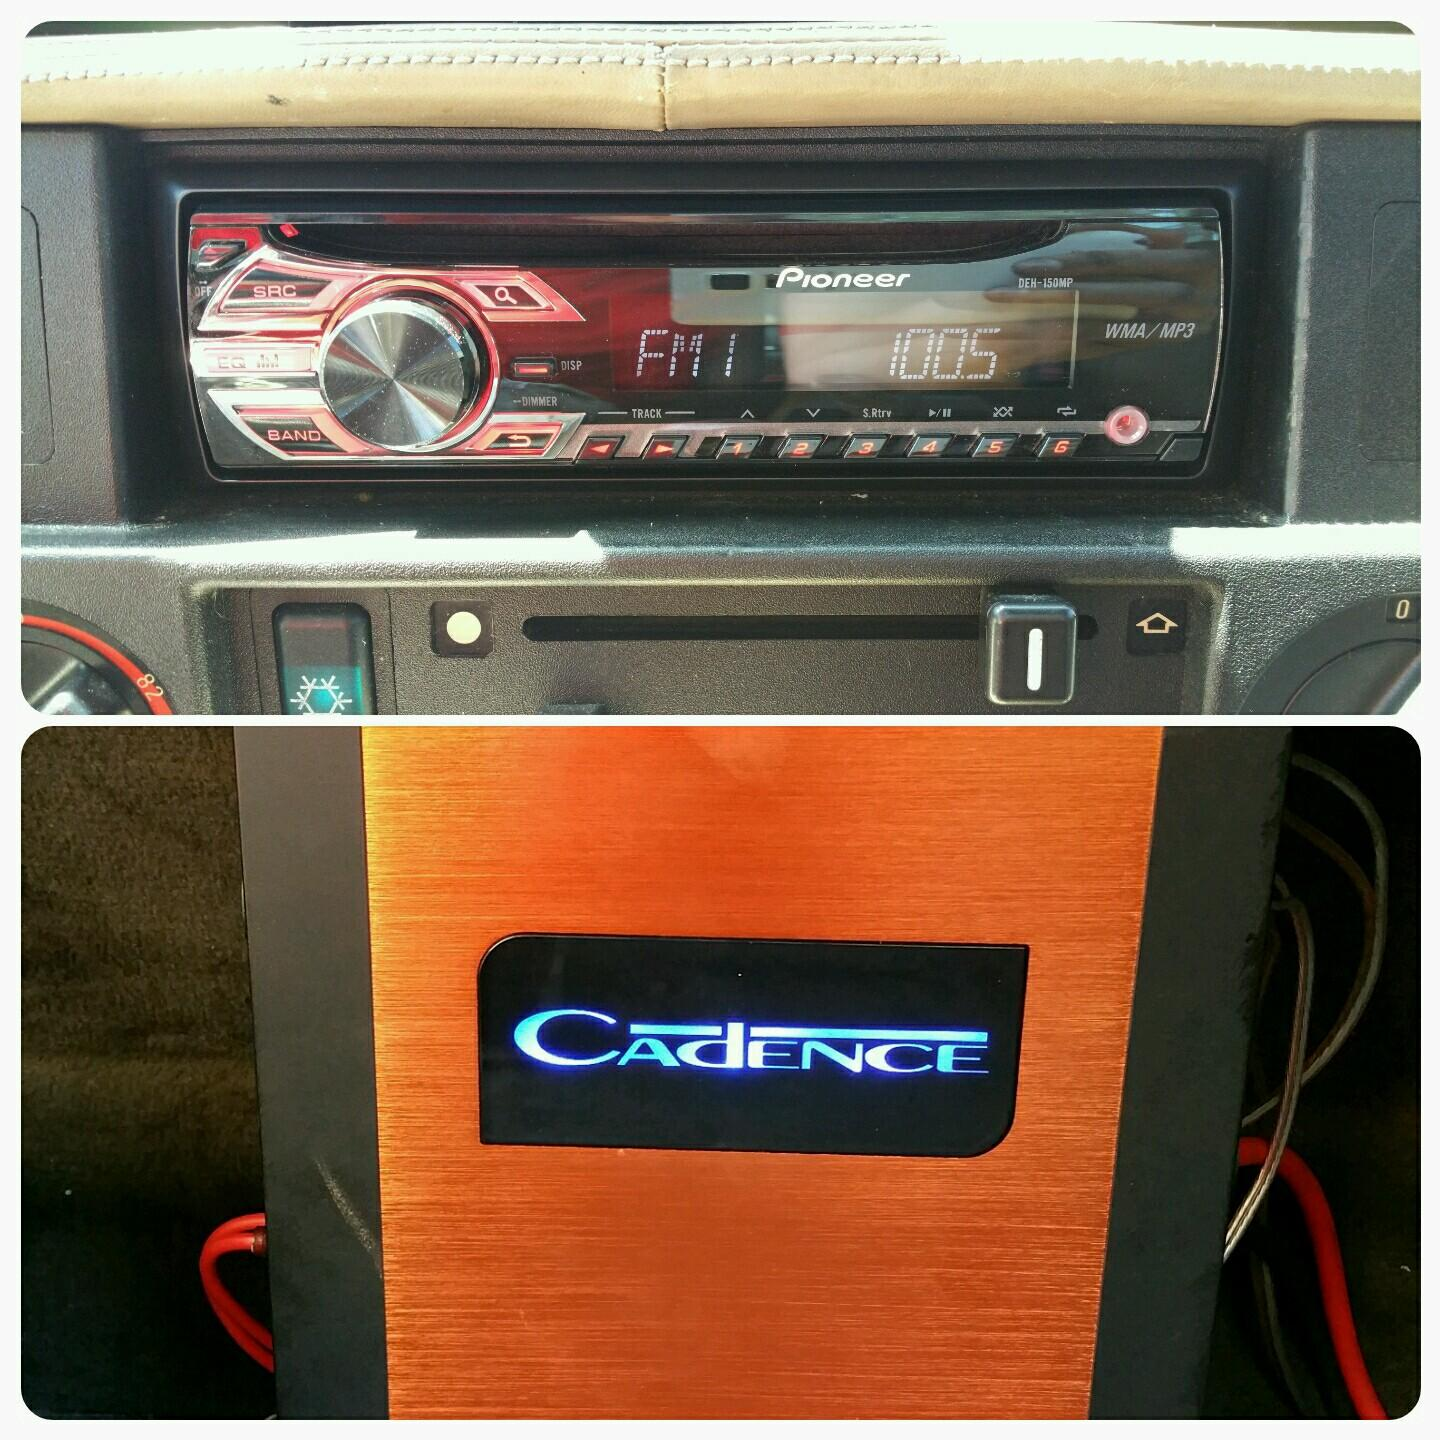 88 BMW M5 with a new Pioneer head unit with new door speakers all the way around. All door speakers are being pushed by this Cadence Amp.